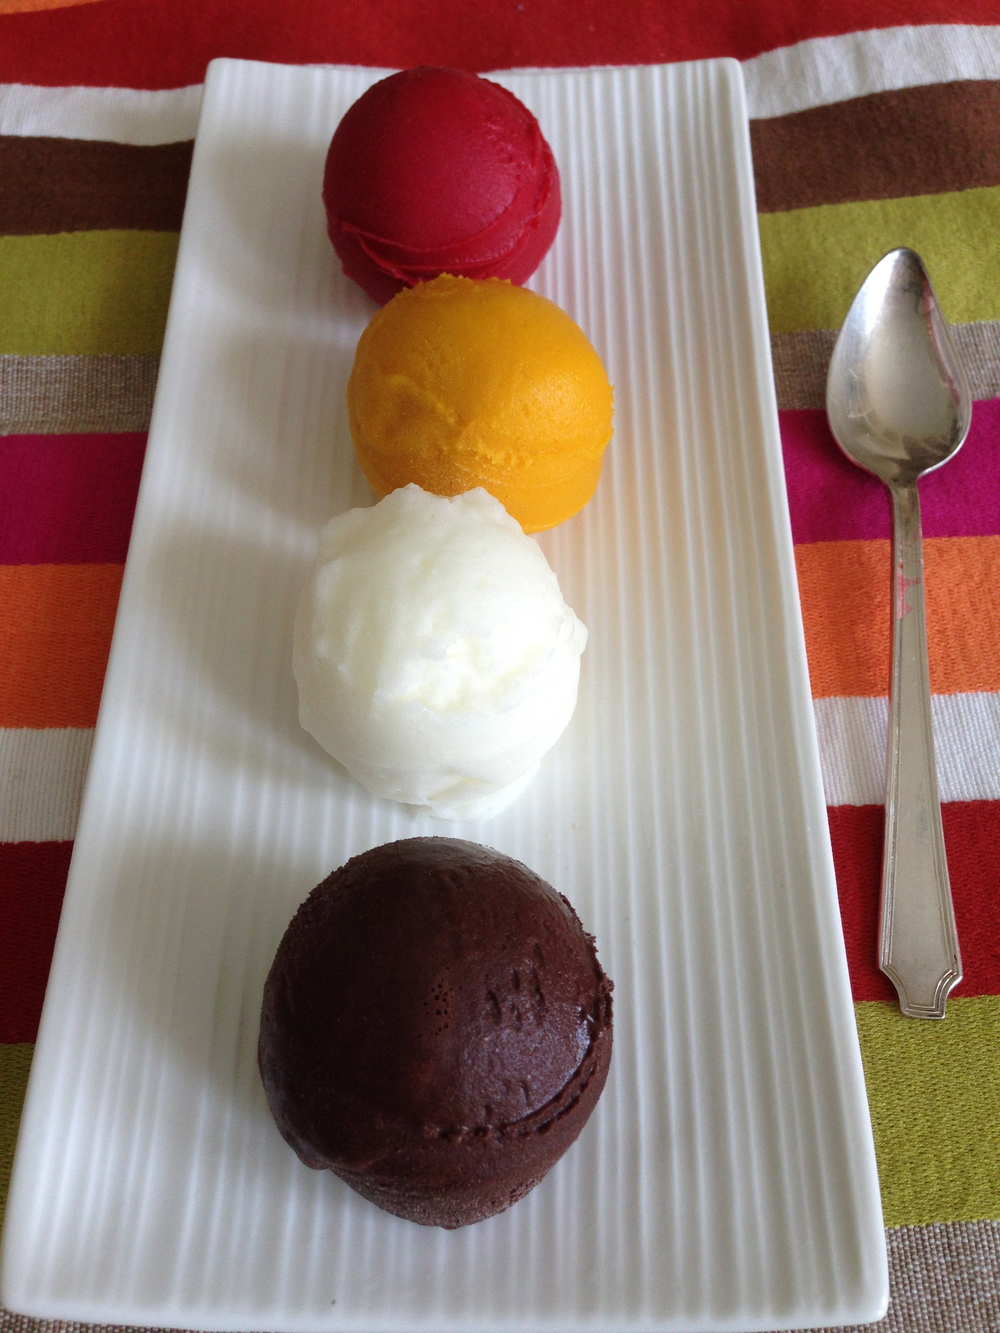 The Tried and True Favourites : Raspberry, Alfonso Mango, Sicilian Lemon Sorbet. Devil's Chocolate Gelato